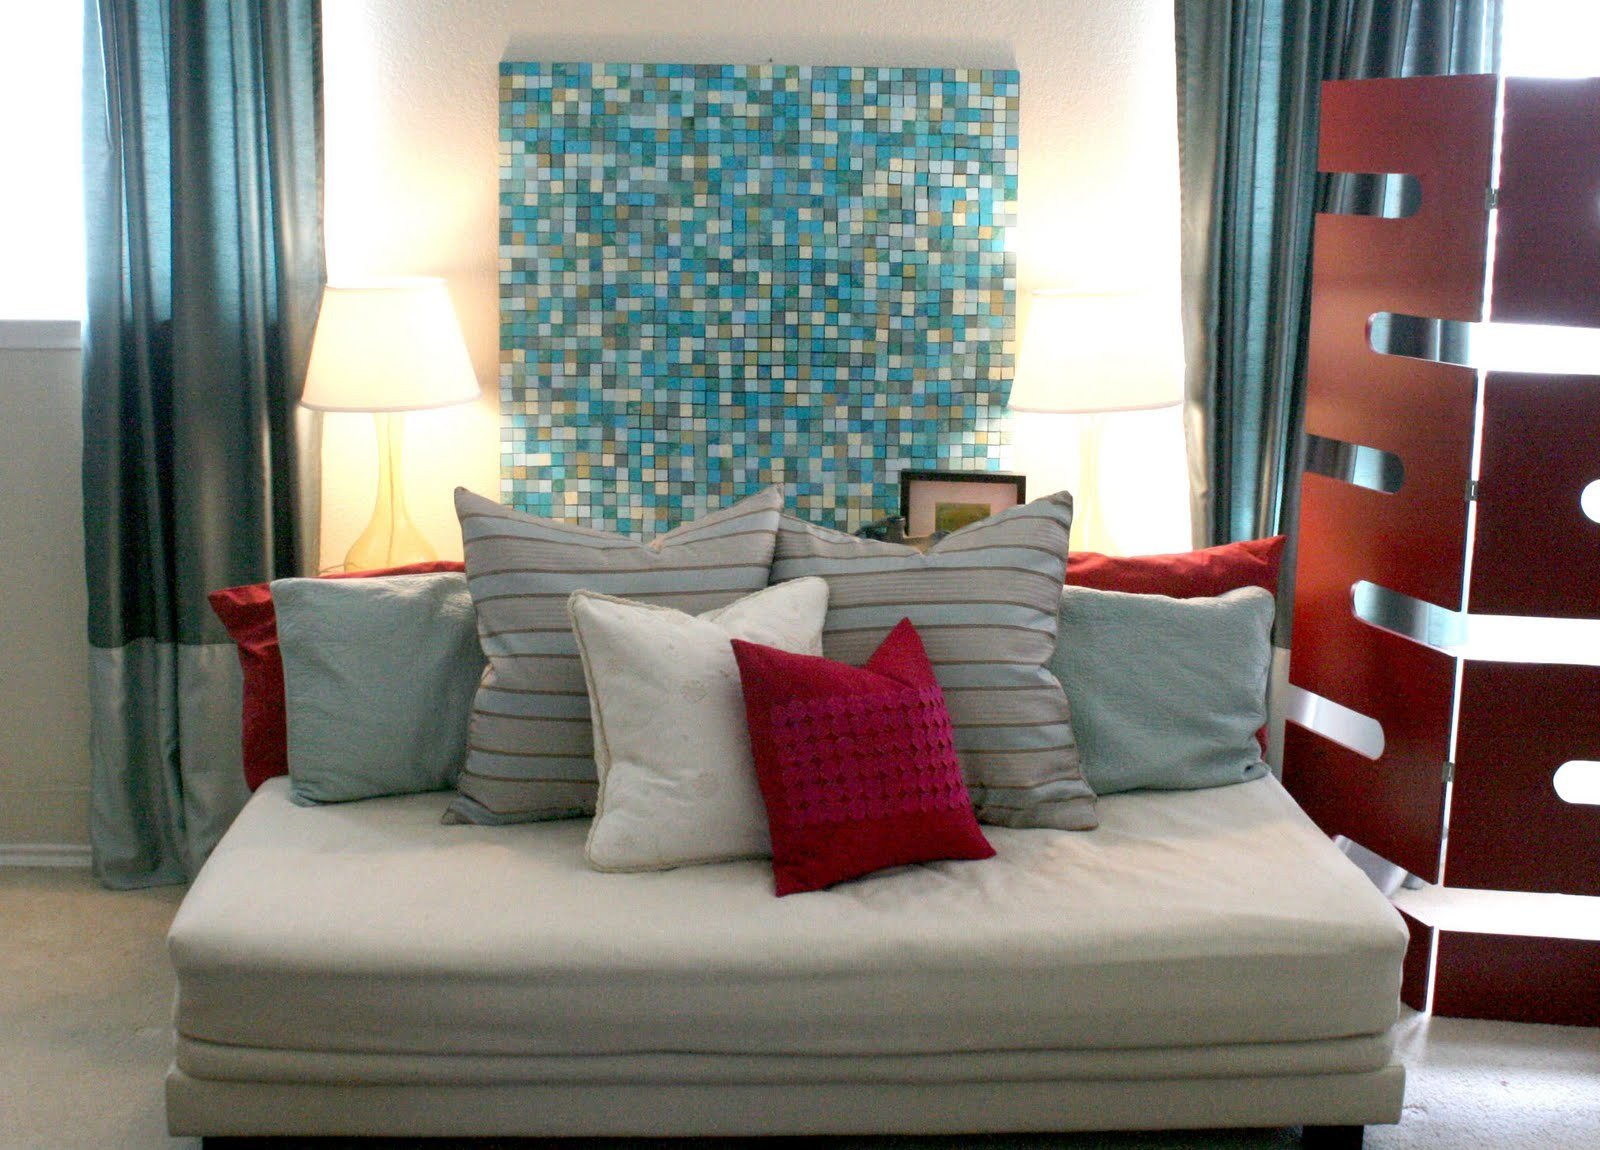 Best Remodelaholic 60 Budget Friendly Diy Large Wall Decor Ideas With Pictures